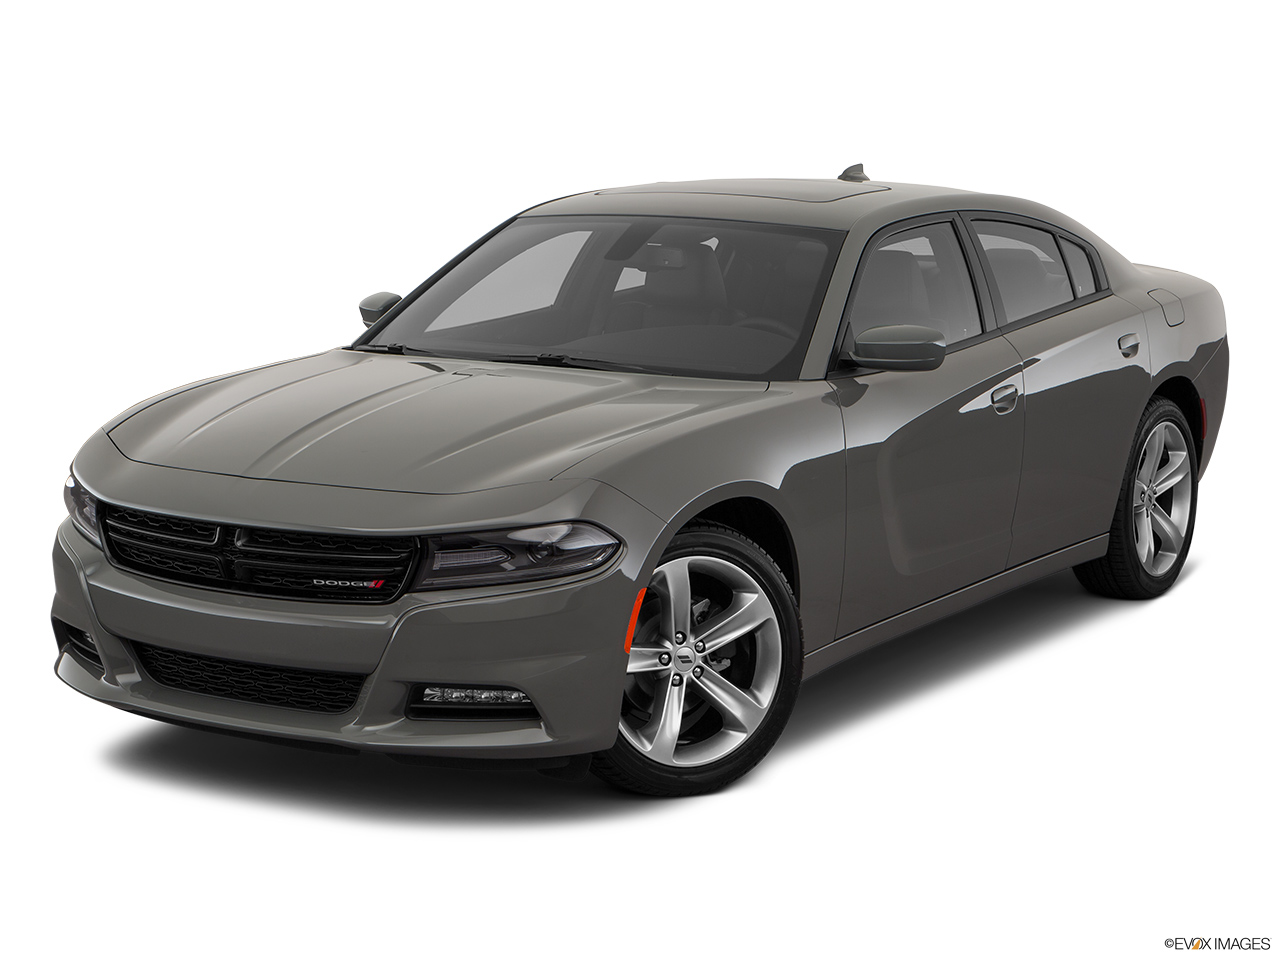 Dodge charger price in uae new dodge charger photos and for Kia motors daphne alabama